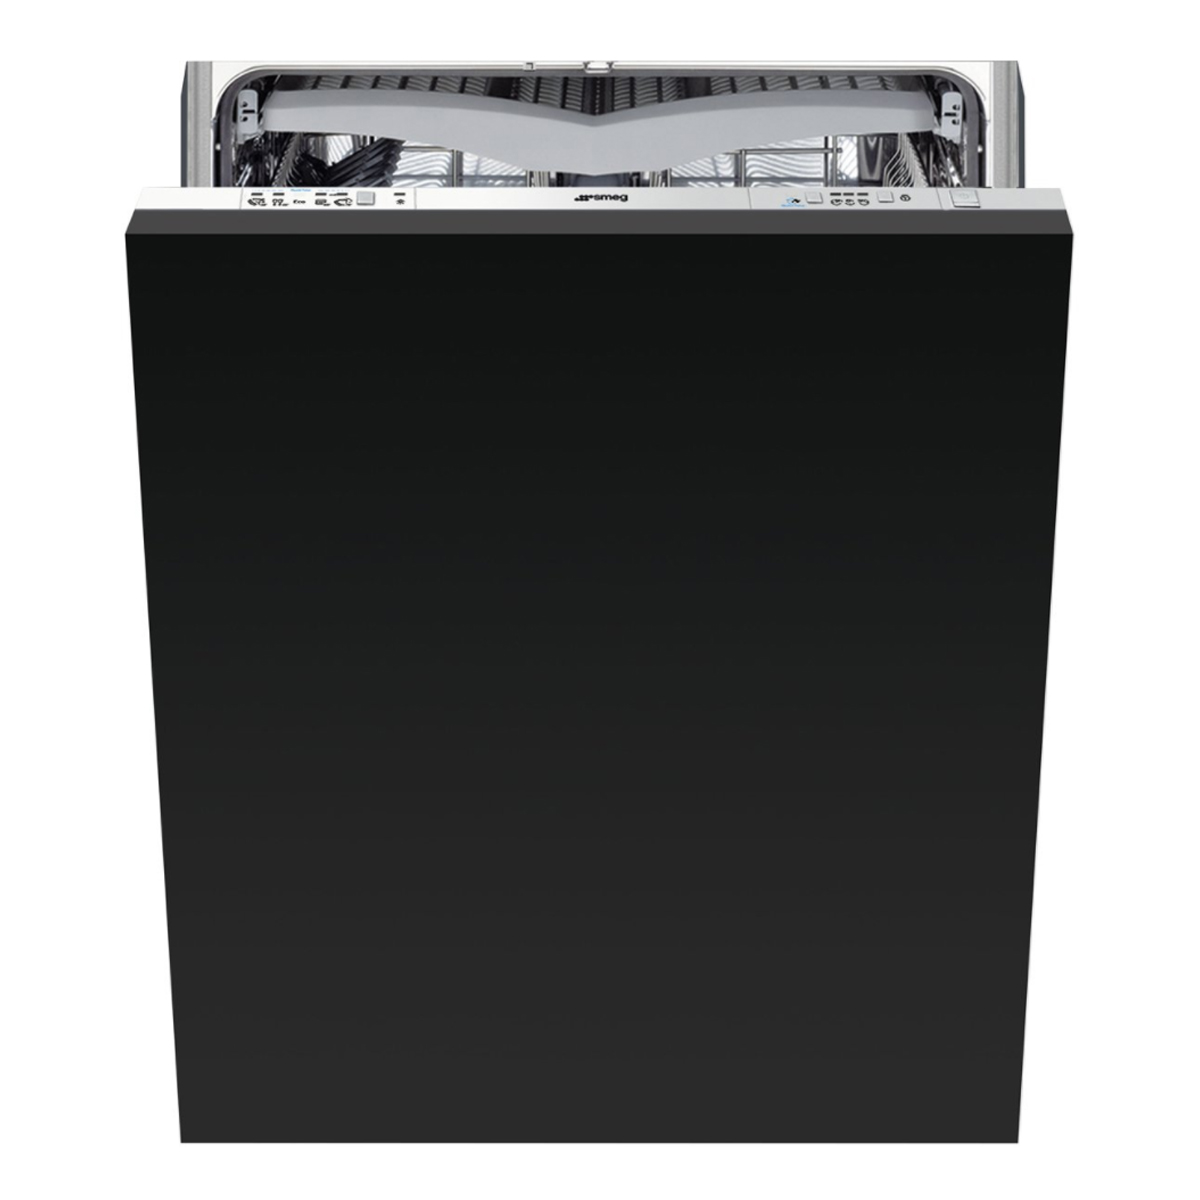 Smeg DWAFI6314 Fully Integrated Dishwasher